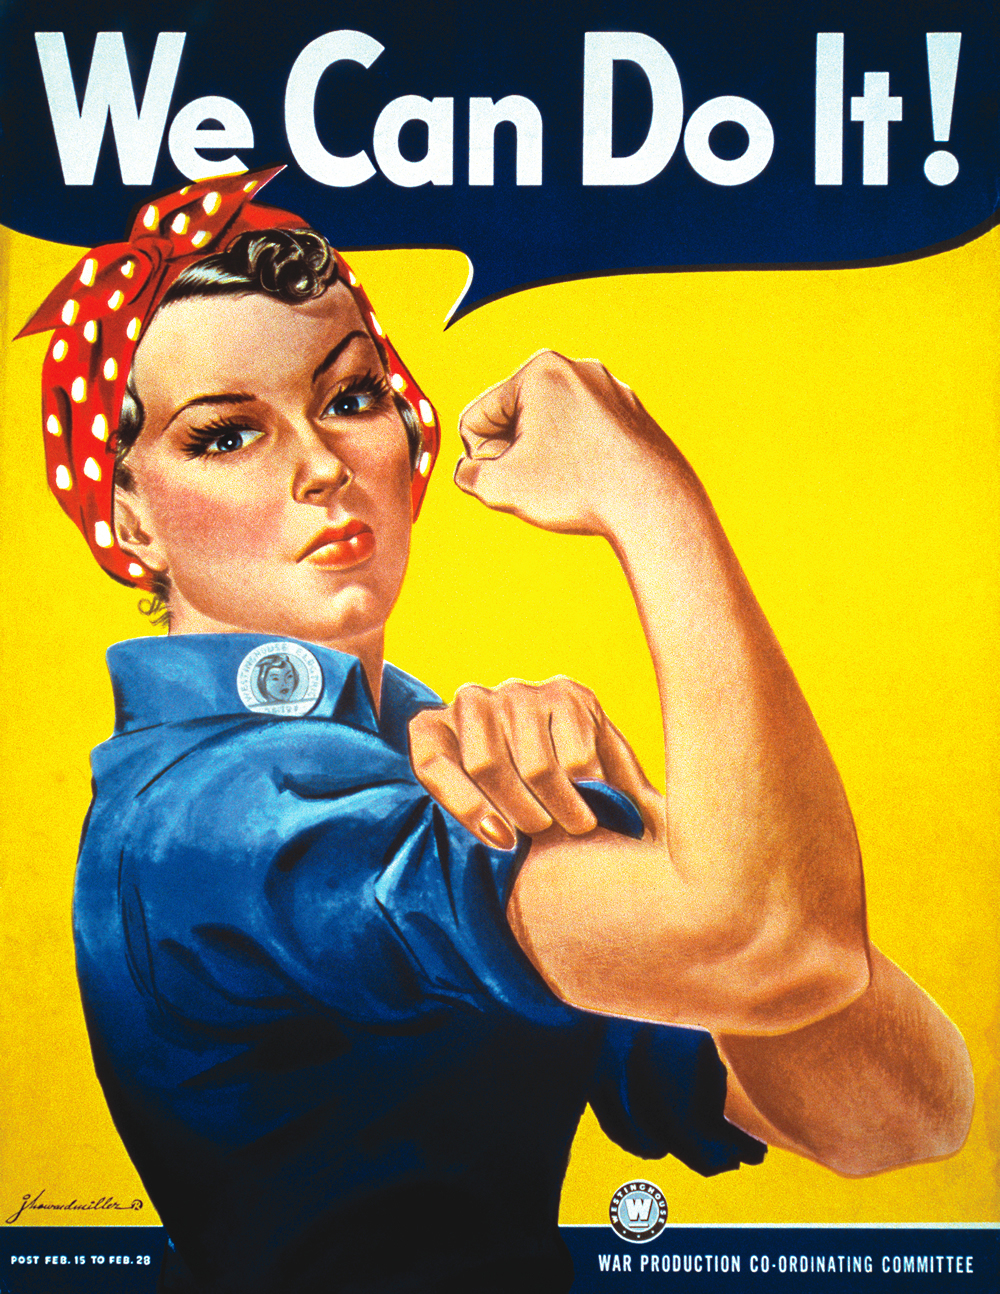 J. Howard Miller's 'We Can Do It' poster from 1942